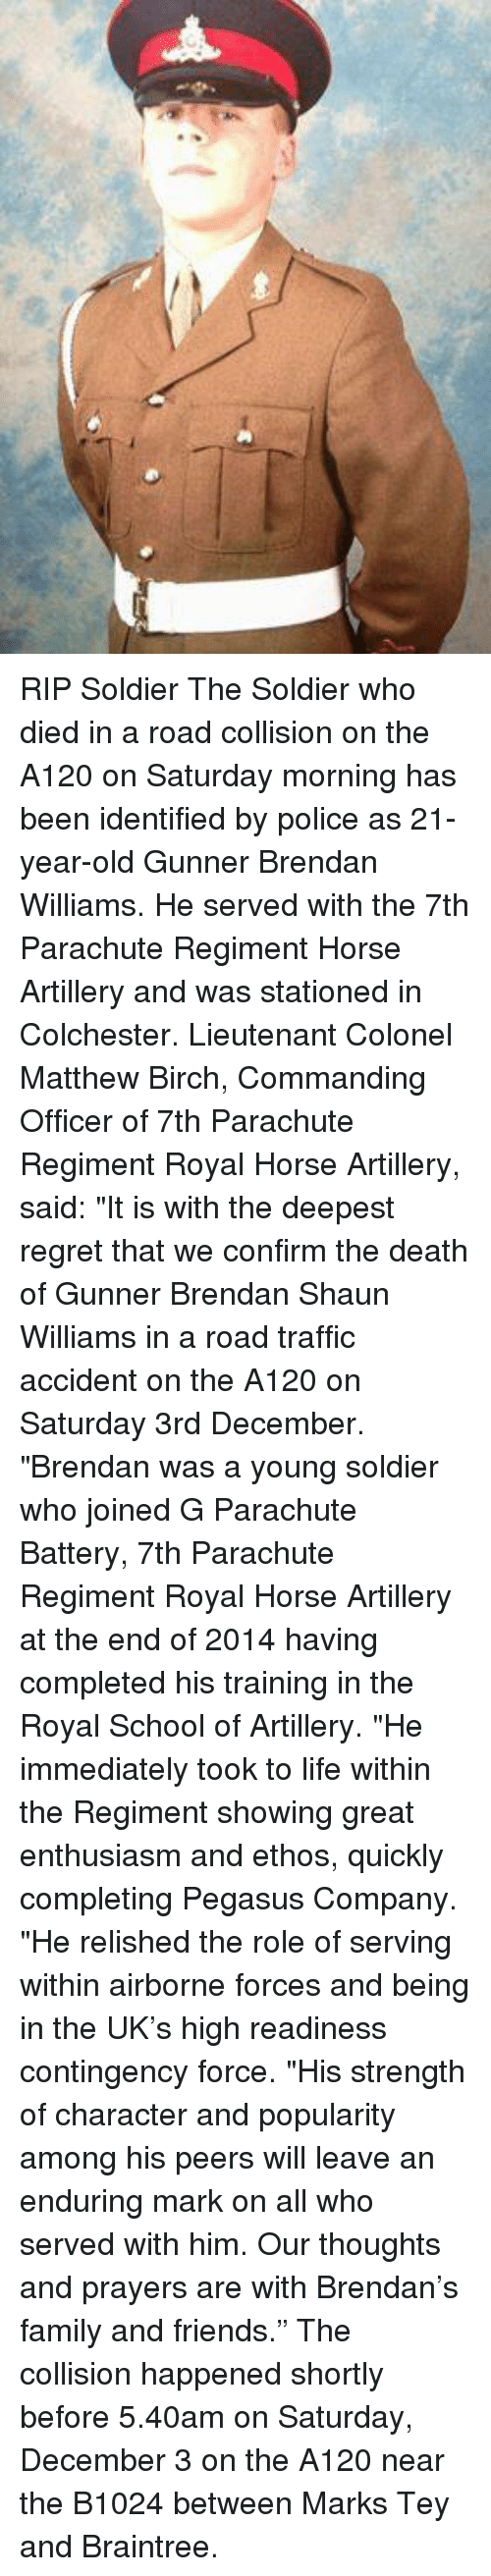 """traffic accident: RIP Soldier The Soldier who died in a road collision on the A120 on Saturday morning has been identified by police as 21-year-old Gunner Brendan Williams.  He served with the 7th Parachute Regiment Horse Artillery and was stationed in Colchester.  Lieutenant Colonel Matthew Birch, Commanding Officer of 7th Parachute Regiment Royal Horse Artillery, said: """"It is with the deepest regret that we confirm the death of Gunner Brendan Shaun Williams in a road traffic accident on the A120 on Saturday 3rd December.  """"Brendan was a young soldier who joined G Parachute Battery, 7th Parachute Regiment Royal Horse Artillery at the end of 2014 having completed his training in the Royal School of Artillery.  """"He immediately took to life within the Regiment showing great enthusiasm and ethos, quickly completing Pegasus Company.  """"He relished the role of serving within airborne forces and being in the UK's high readiness contingency force.  """"His strength of character and popularity among his peers will leave an enduring mark on all who served with him. Our thoughts and prayers are with Brendan's family and friends.""""  The collision happened shortly before 5.40am on Saturday, December 3 on the A120 near the B1024 between Marks Tey and Braintree."""